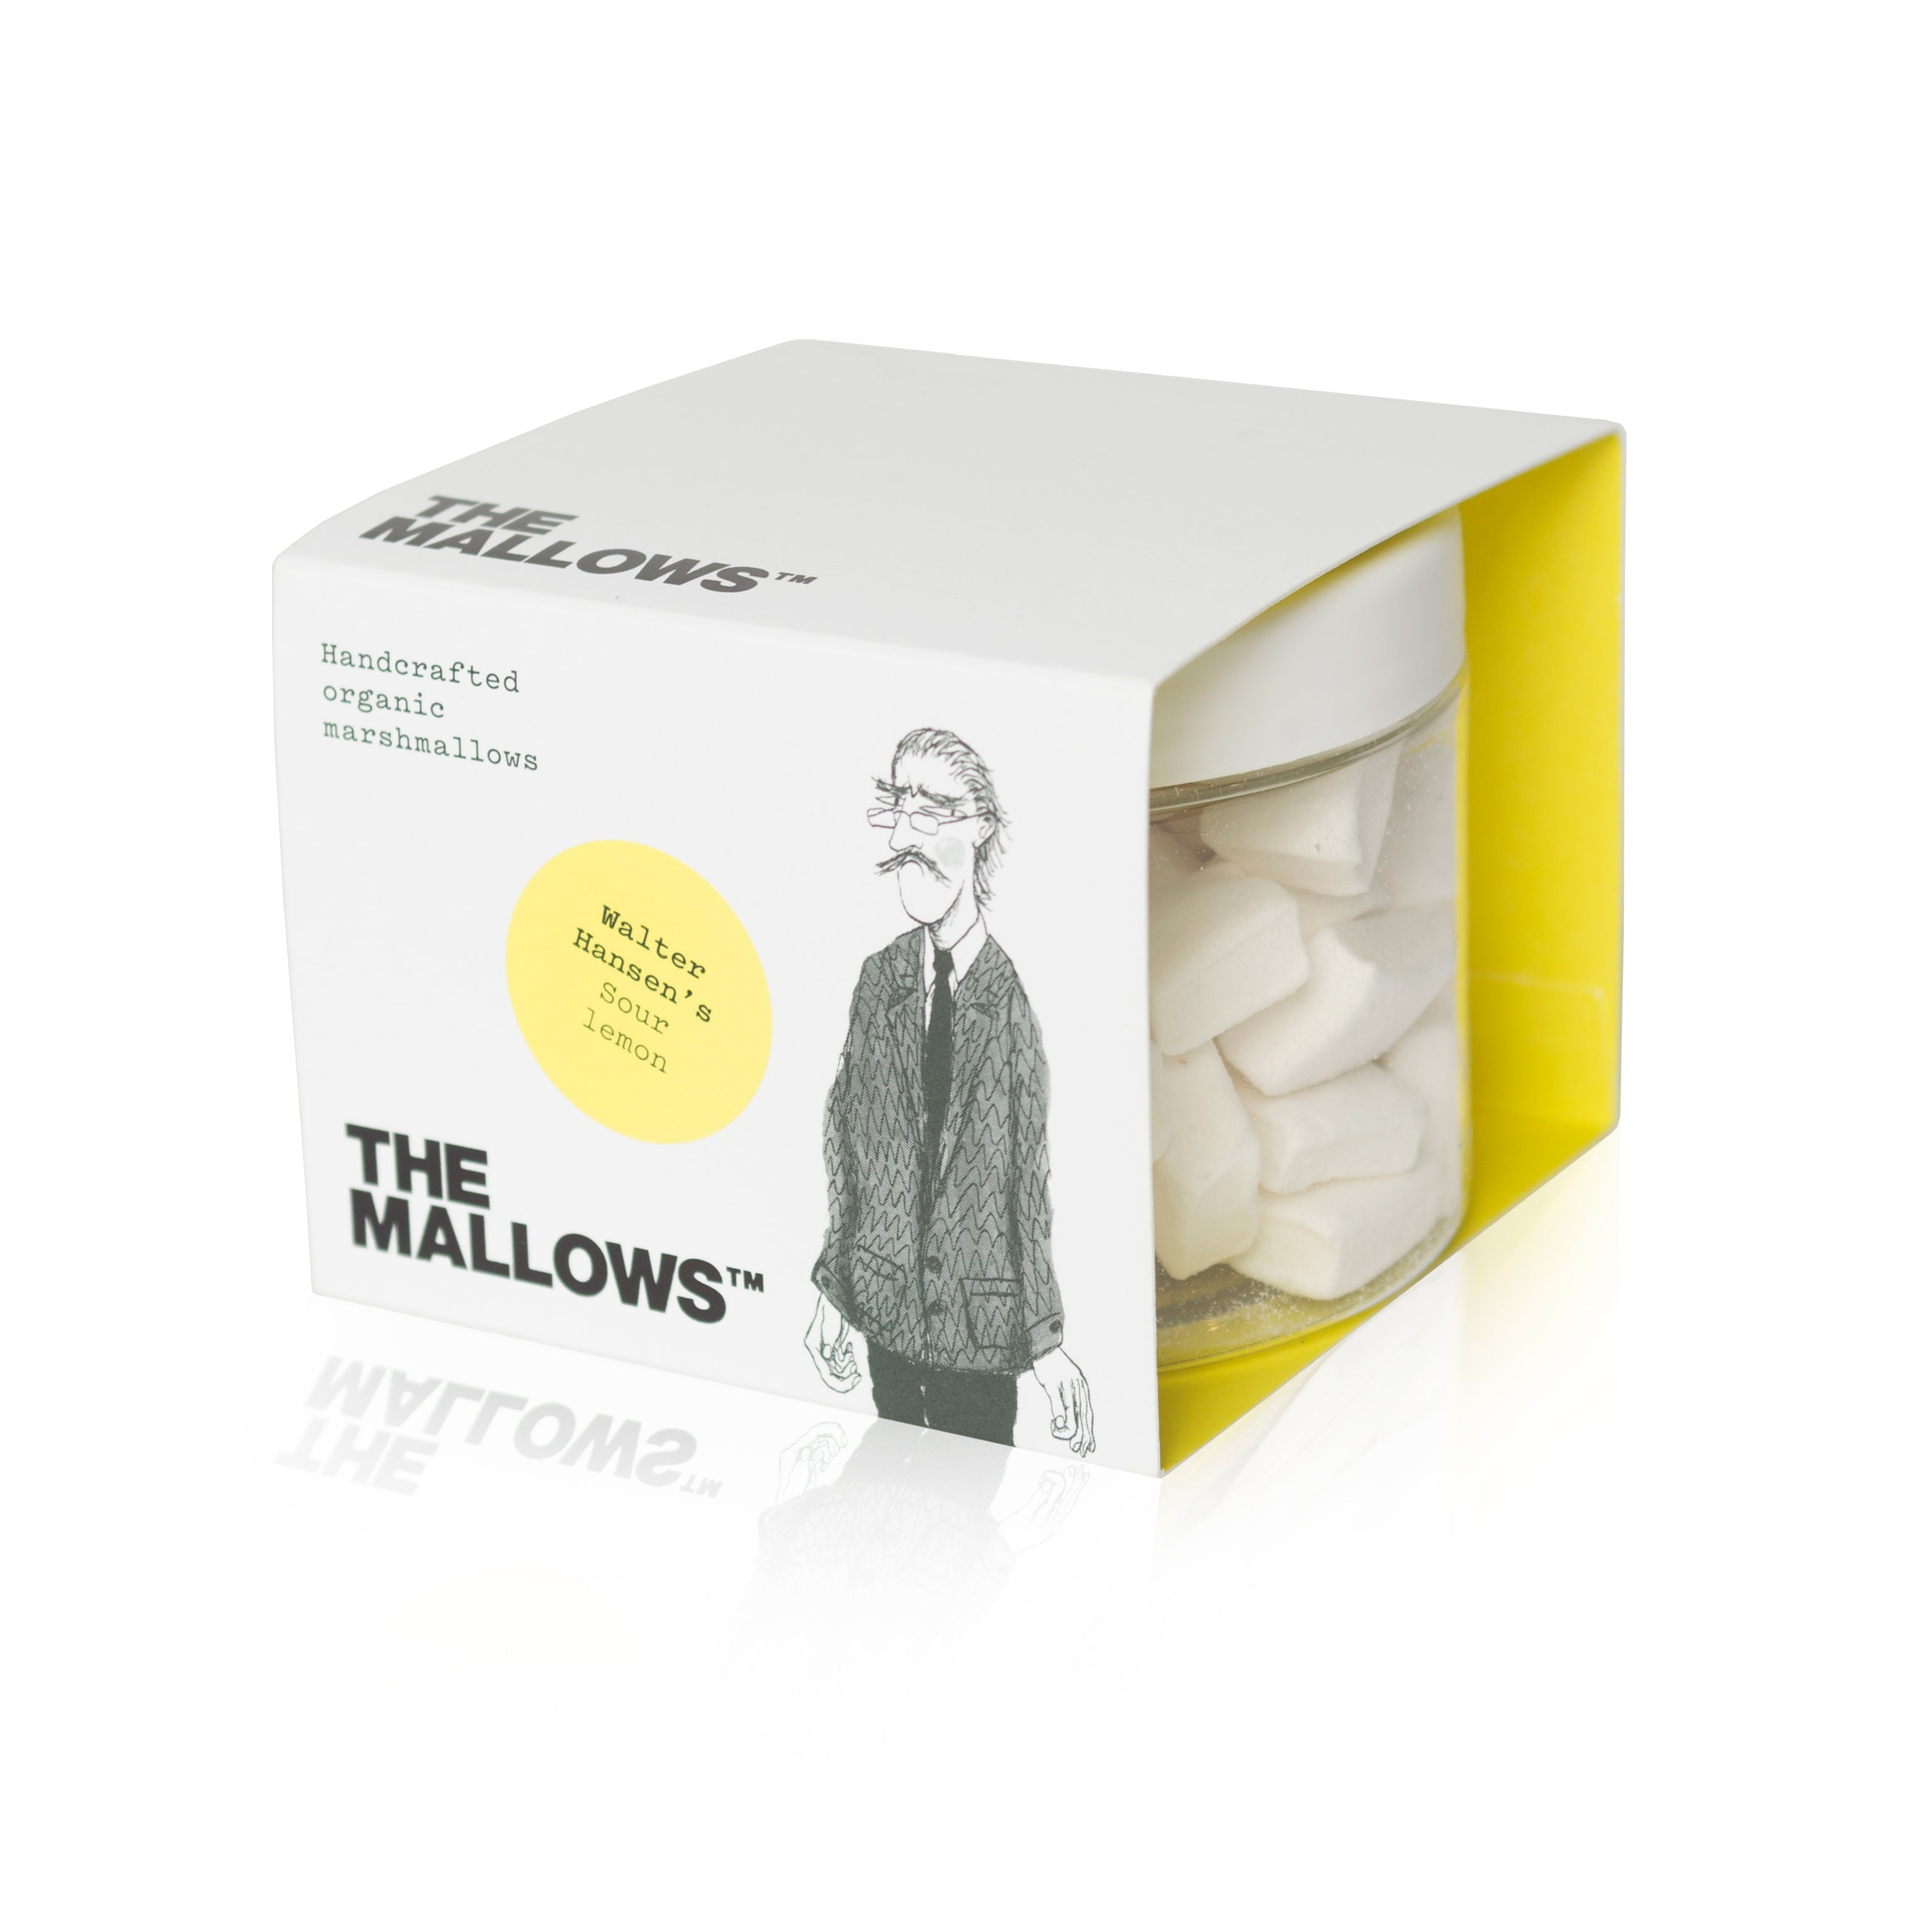 Skumfiduser. Skumfiduser lemon. Walter Hansen's Sour Lemon marshmallows